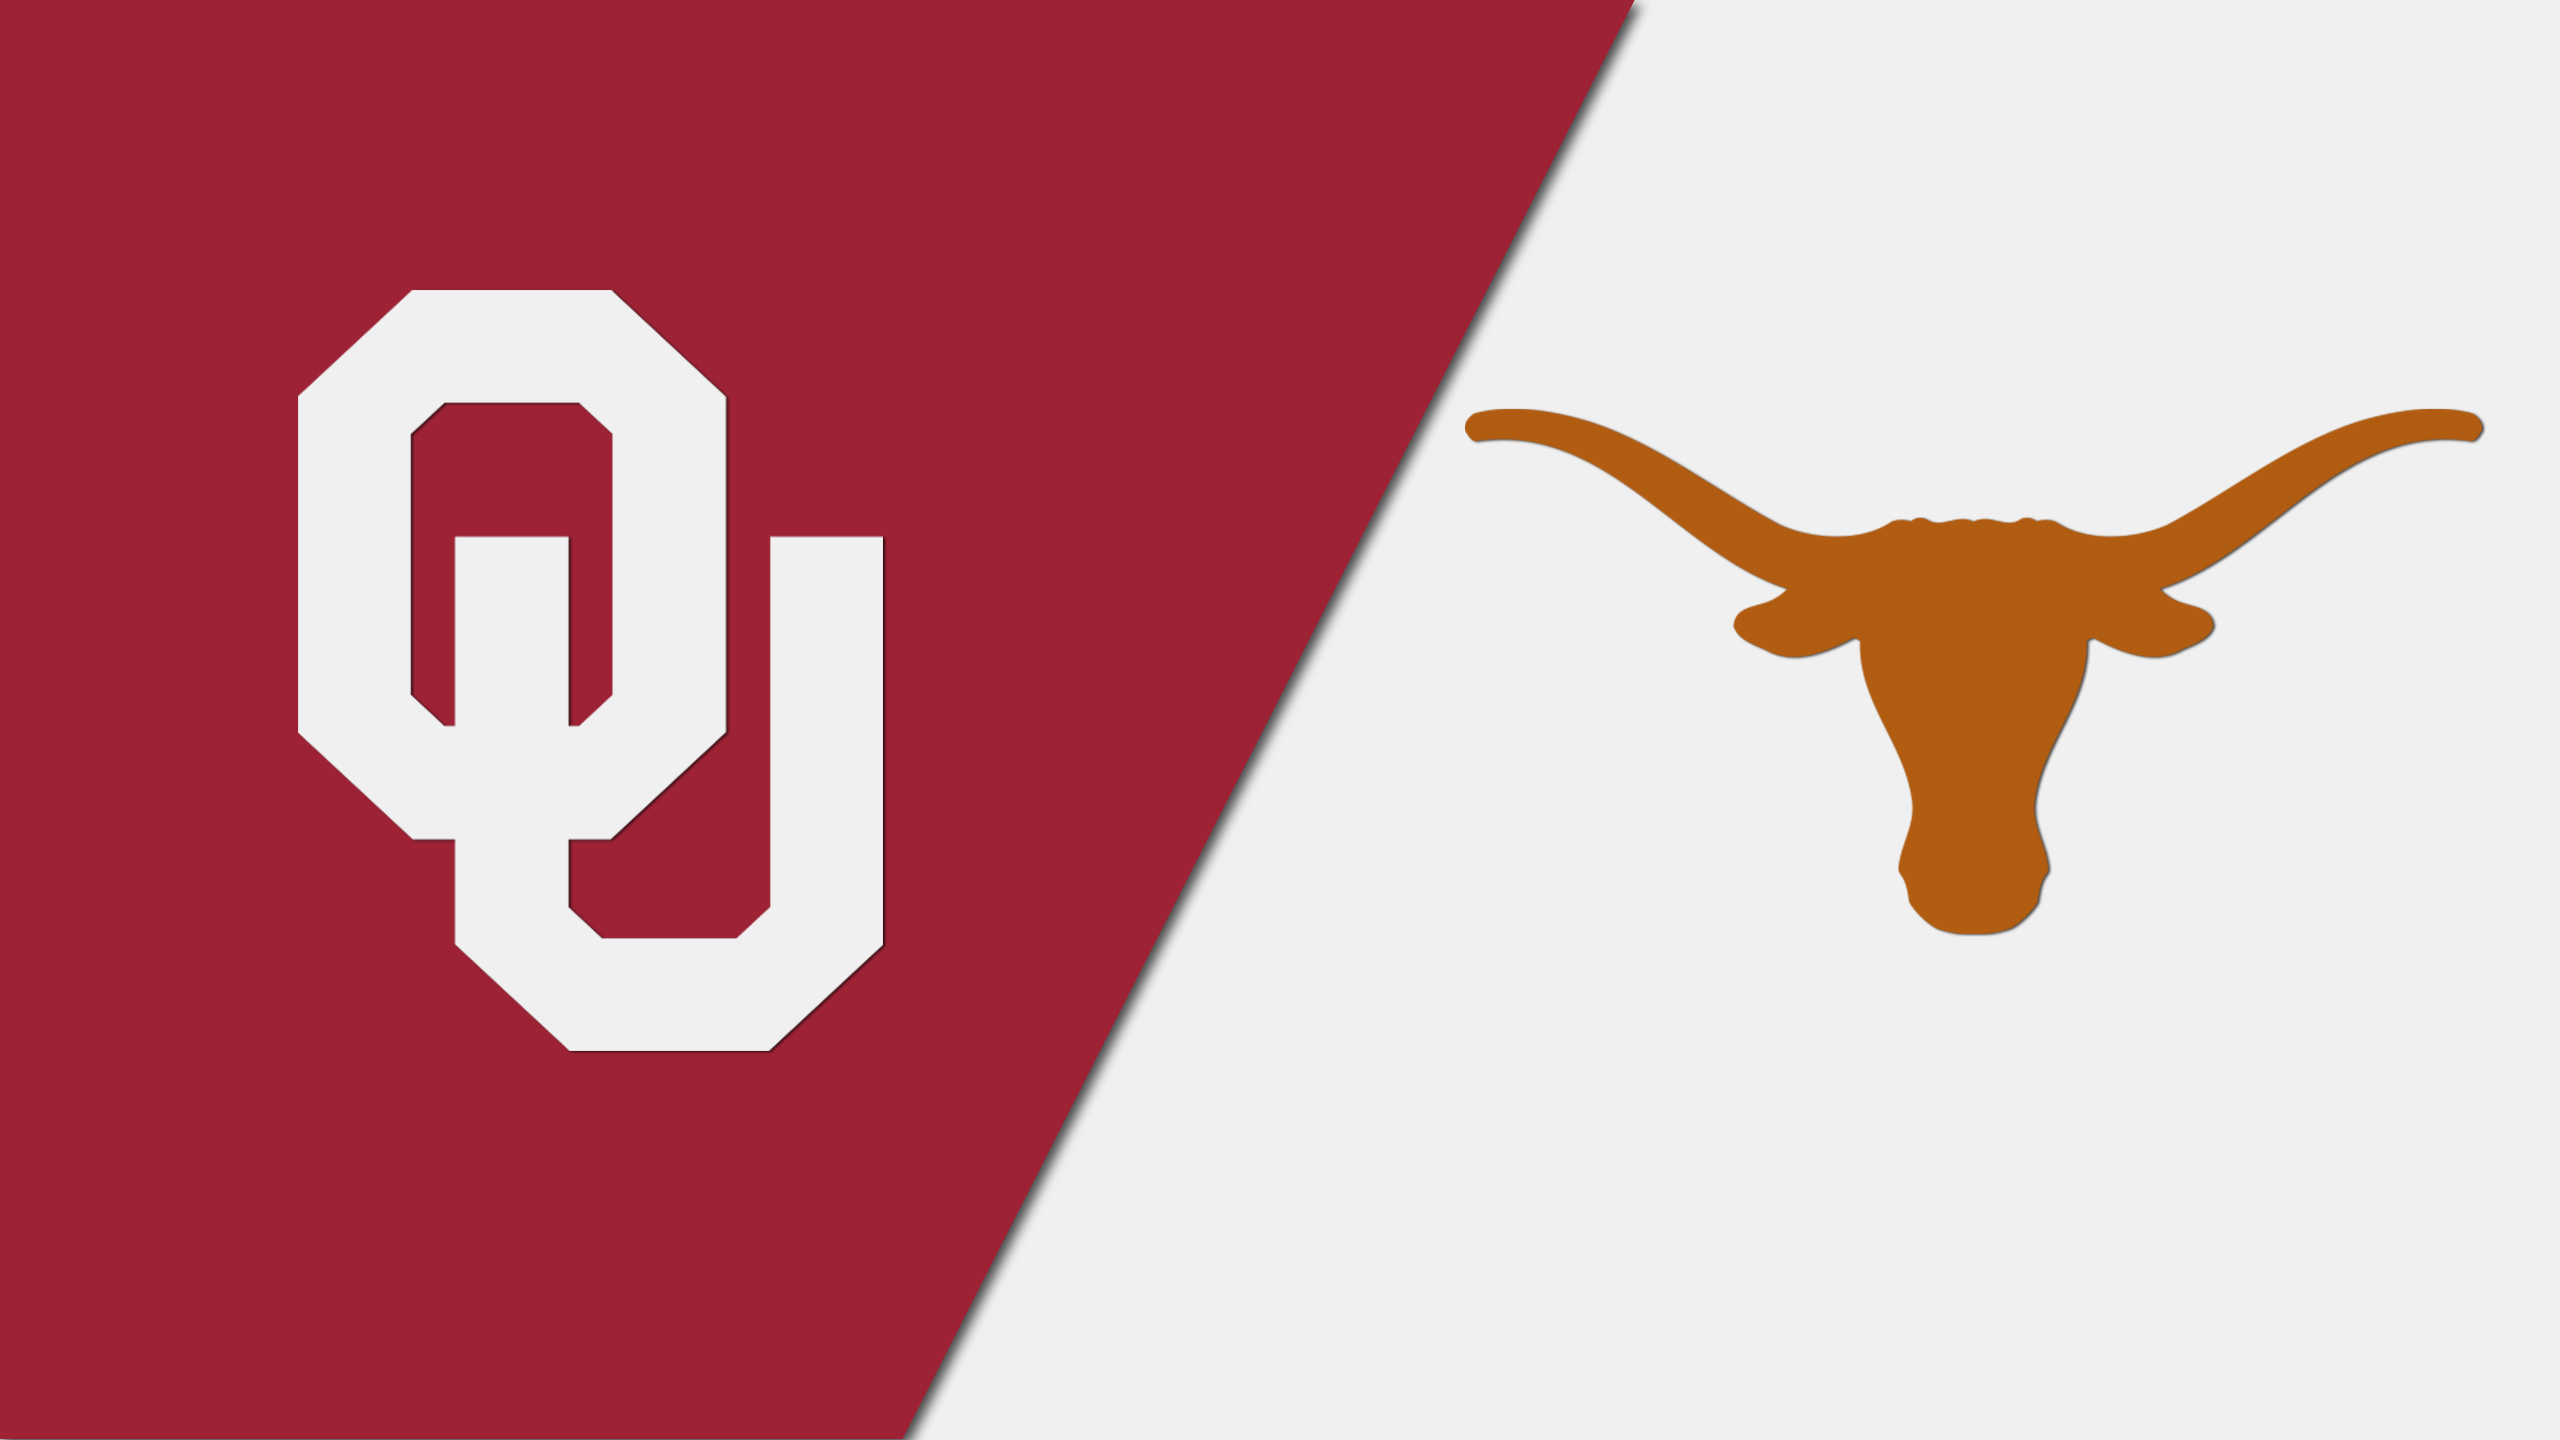 #1 Oklahoma vs. #10 Texas (Softball) (re-air)